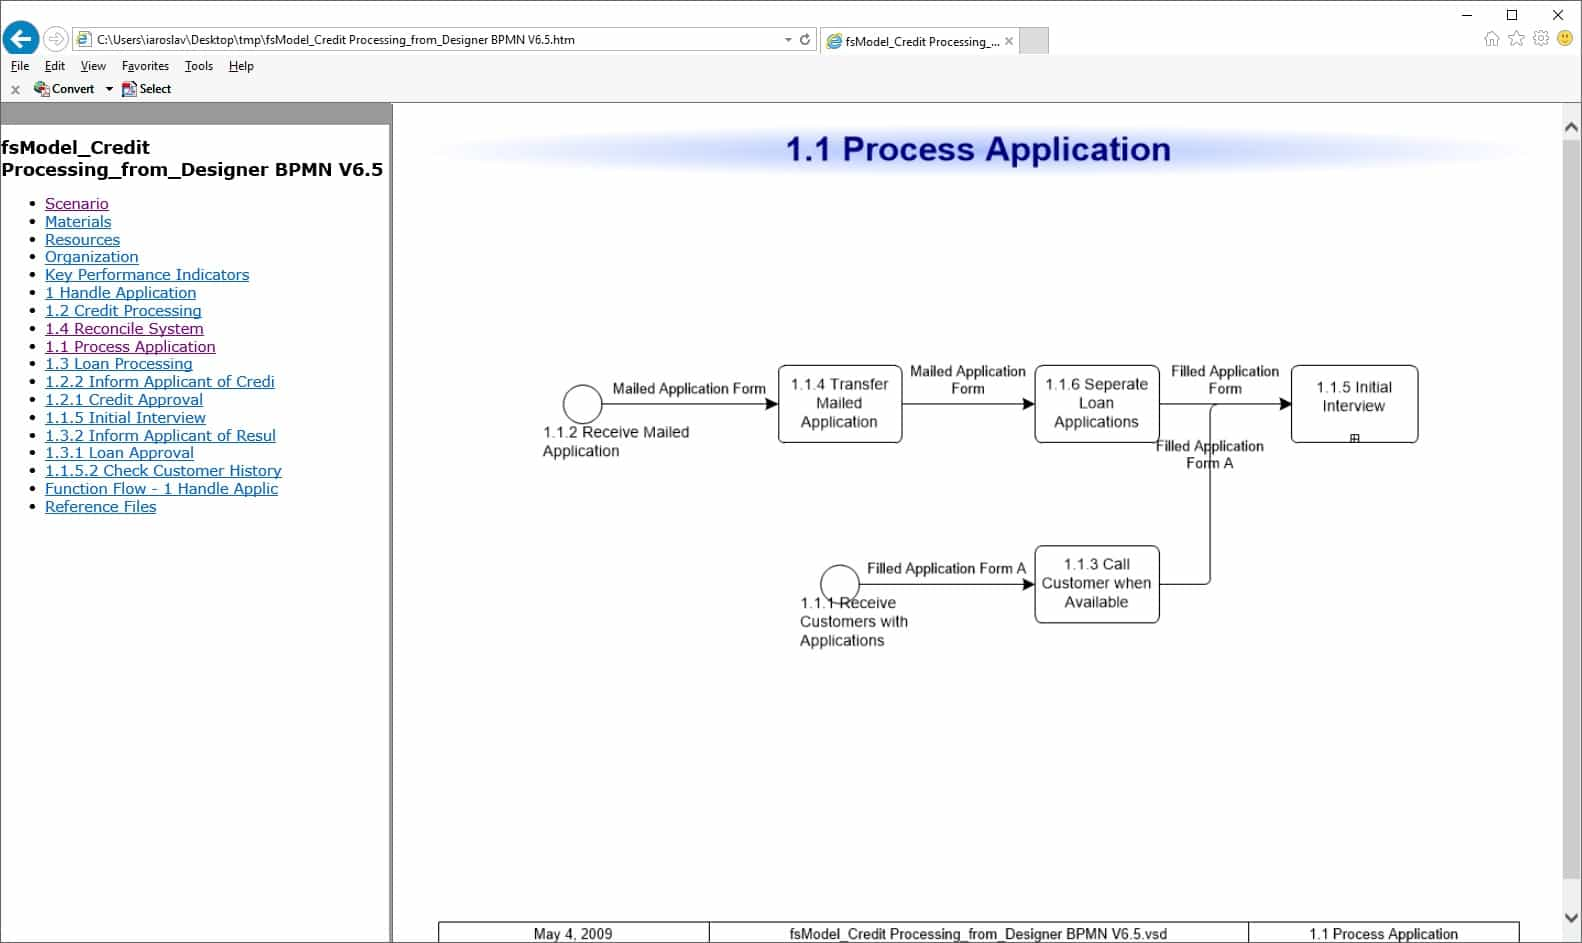 Visio Bpmn Process Mapping Modeler Interfacing Flow Diagram Using Within The Familiar Ms Application So Your Modelers Benefit From Microsofts Characteristic Ease Of Use Functionality While Benefiting